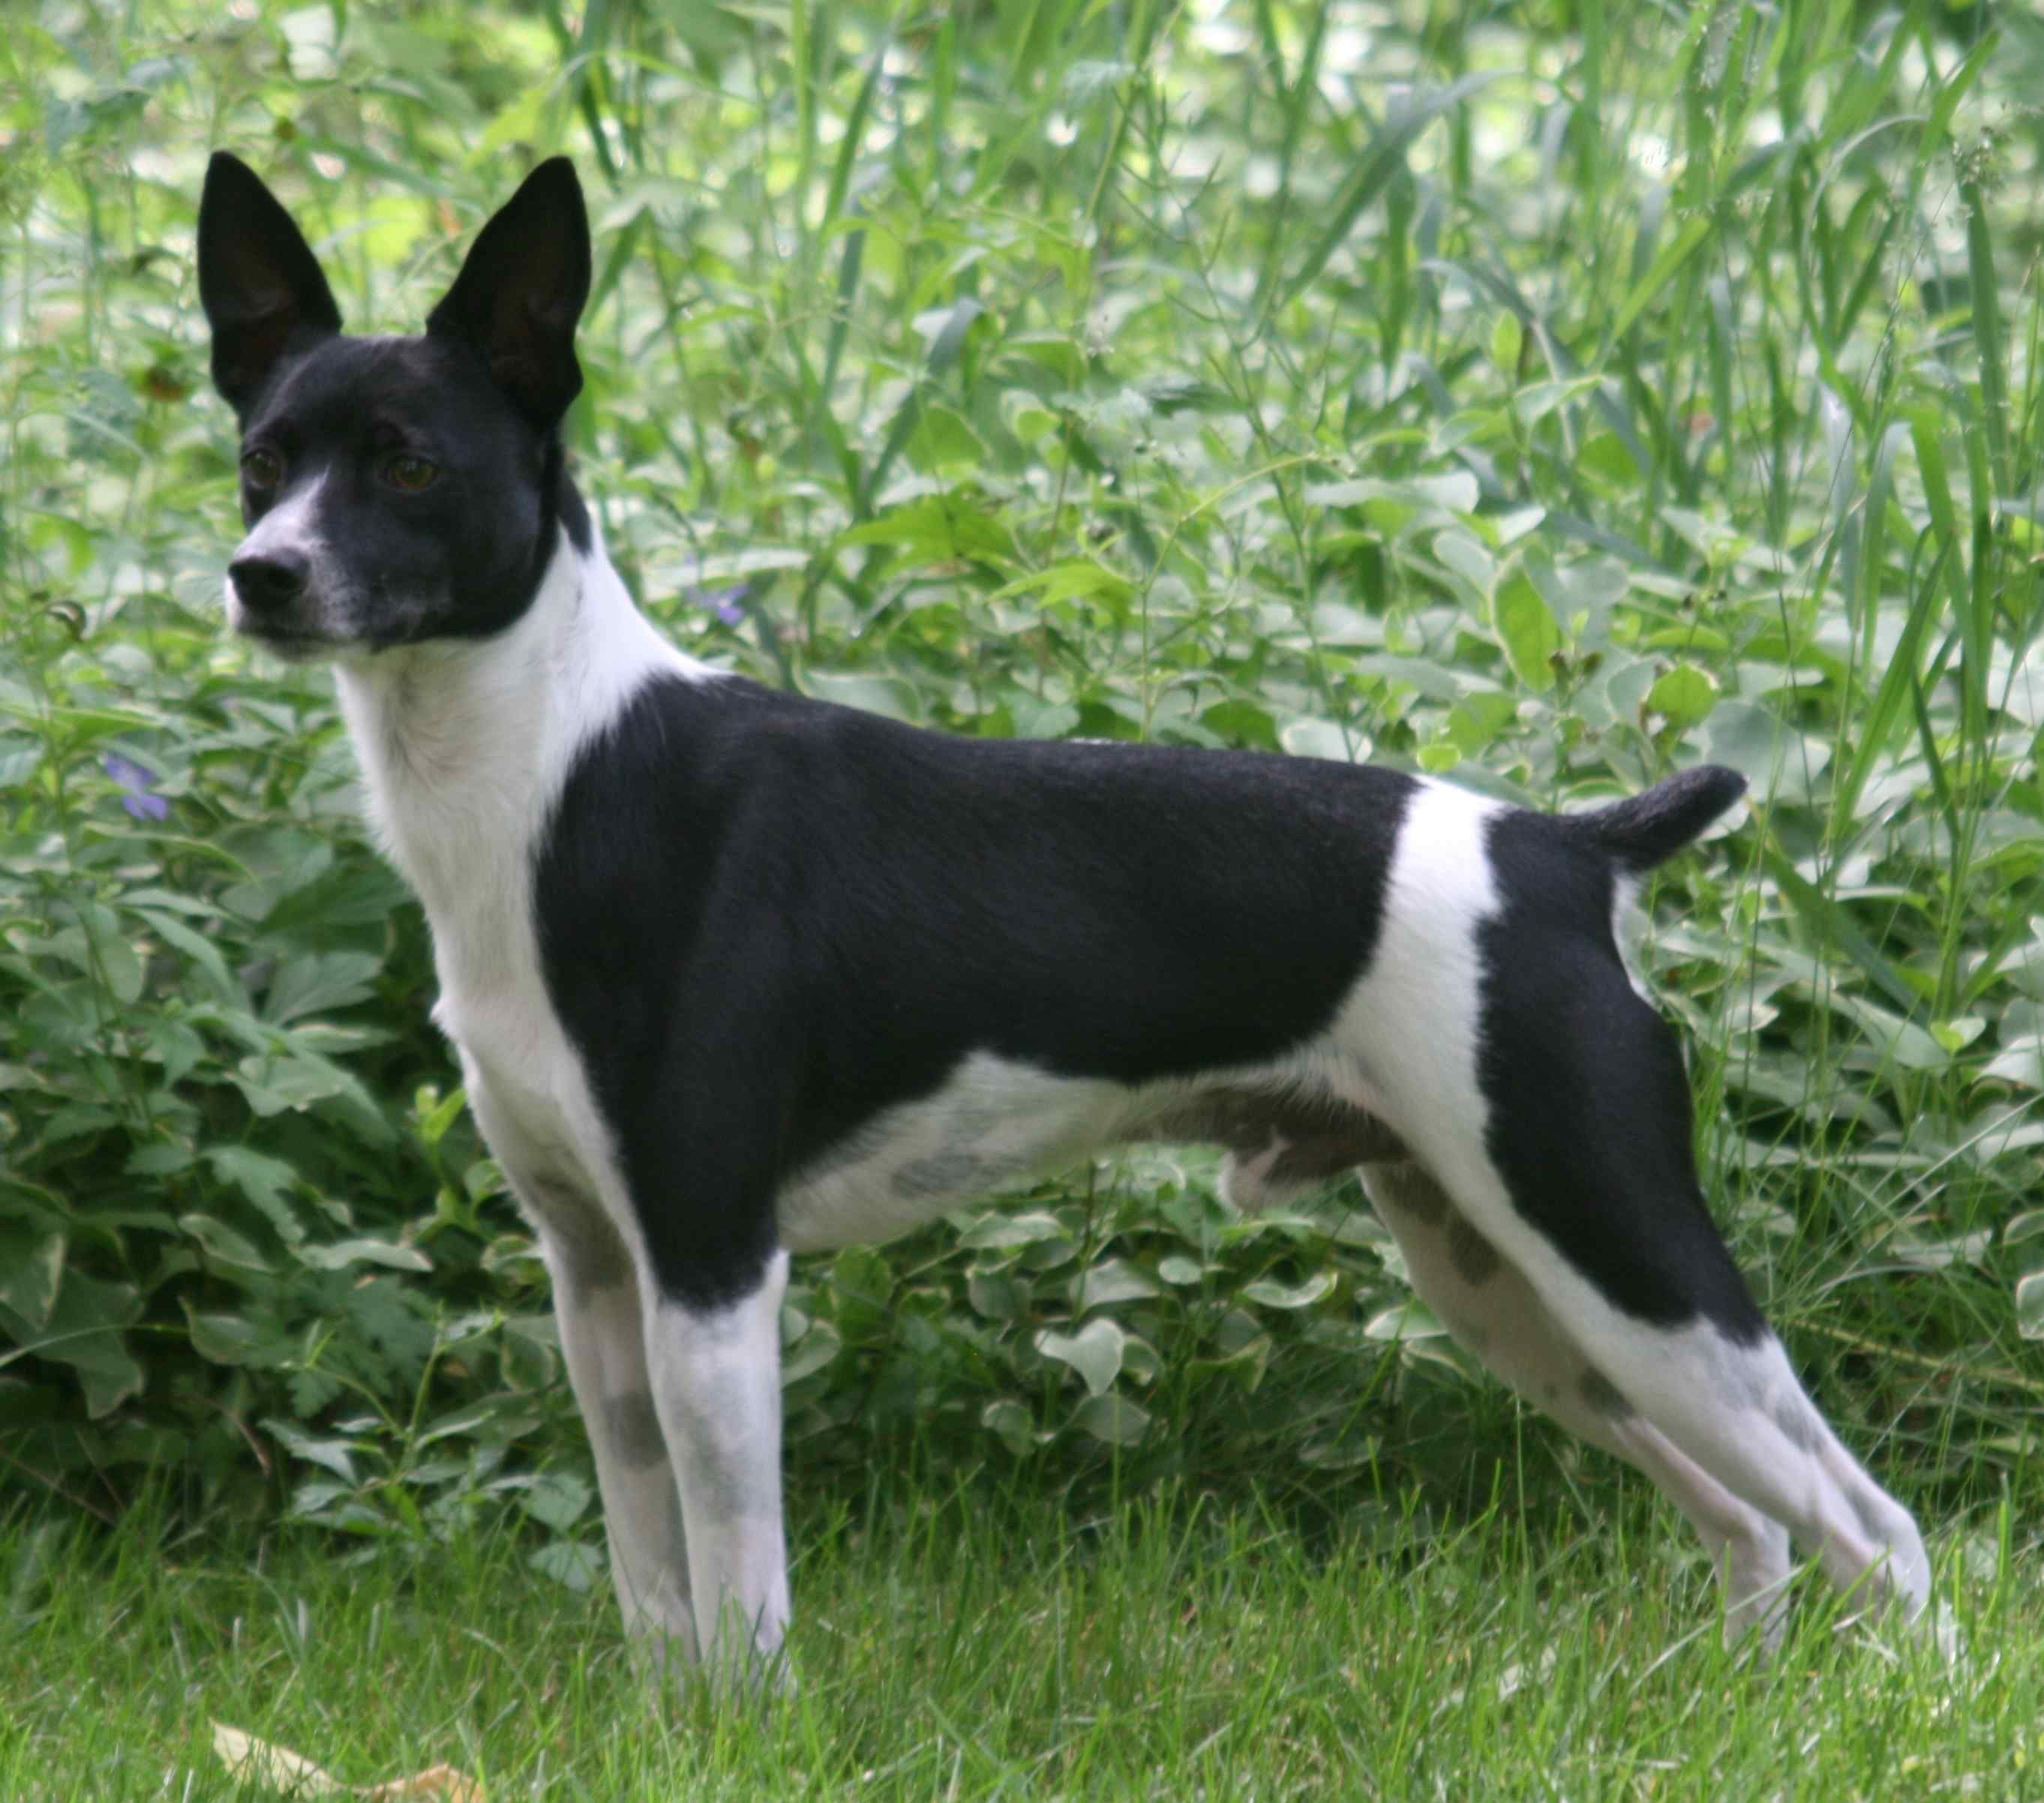 Rat Terrier Photos And Wallpapers The Beautiful Rat Terrier Pictures Page 2328 Rat Terrier Dogs Rat Terriers Terrier Breeds